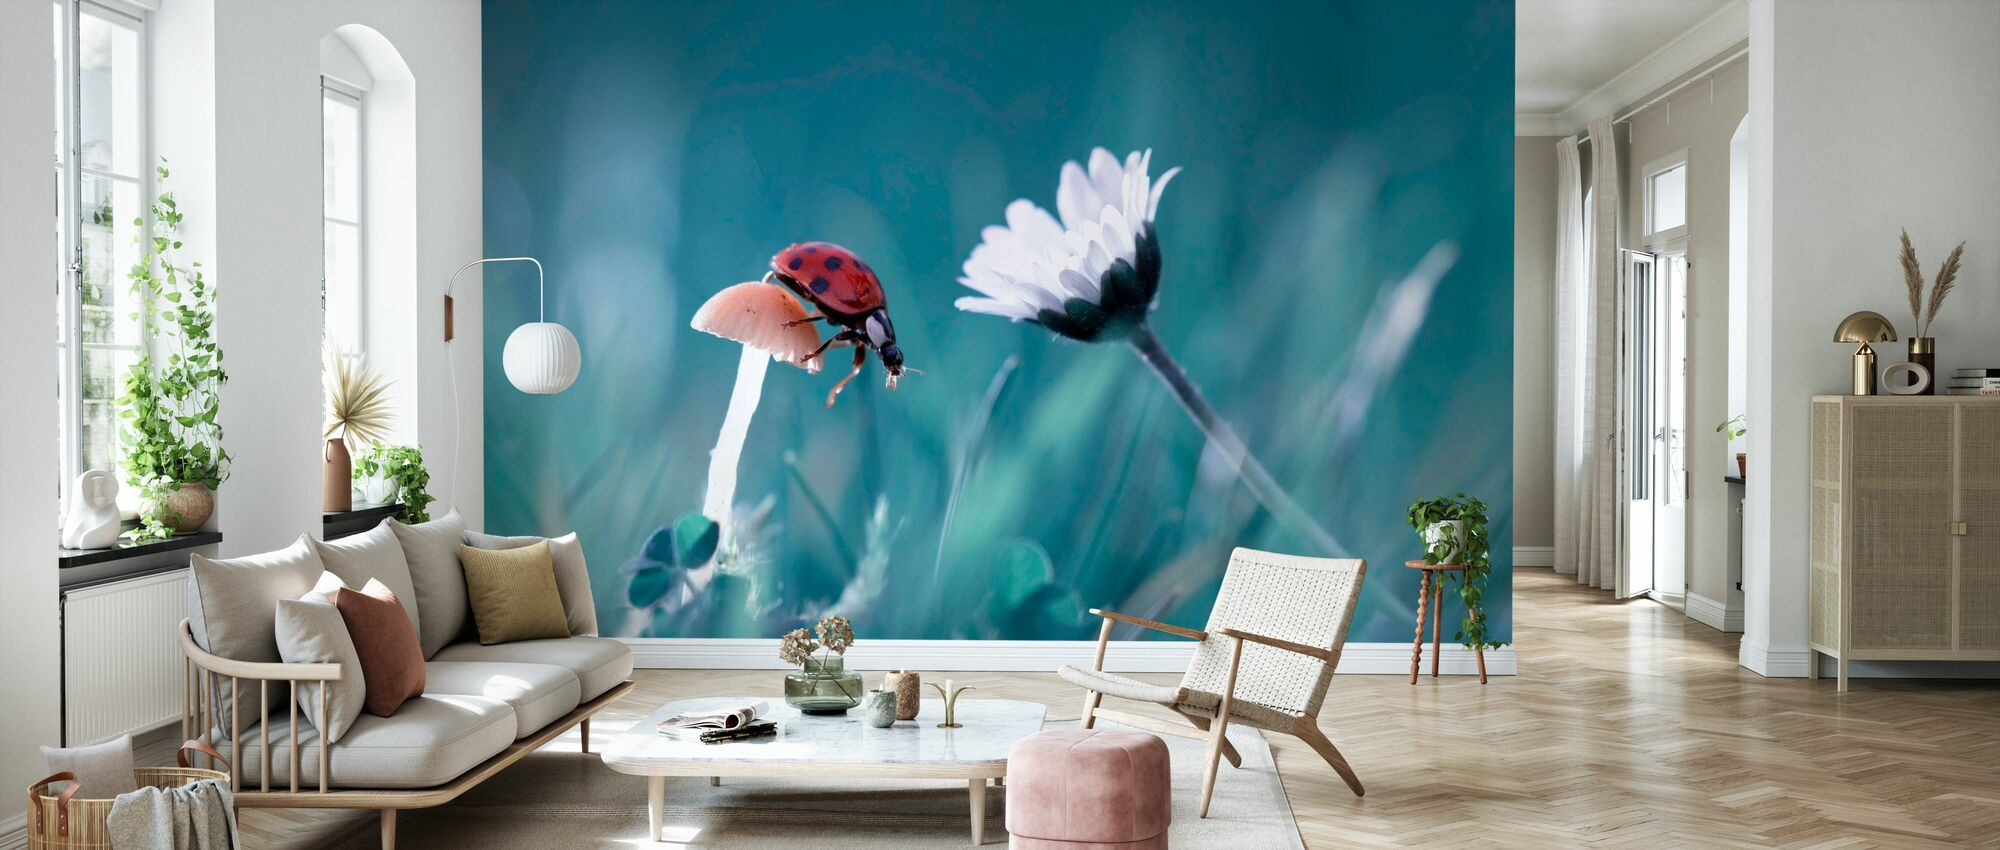 Story of the Lady Bug - Wallpaper - Living Room